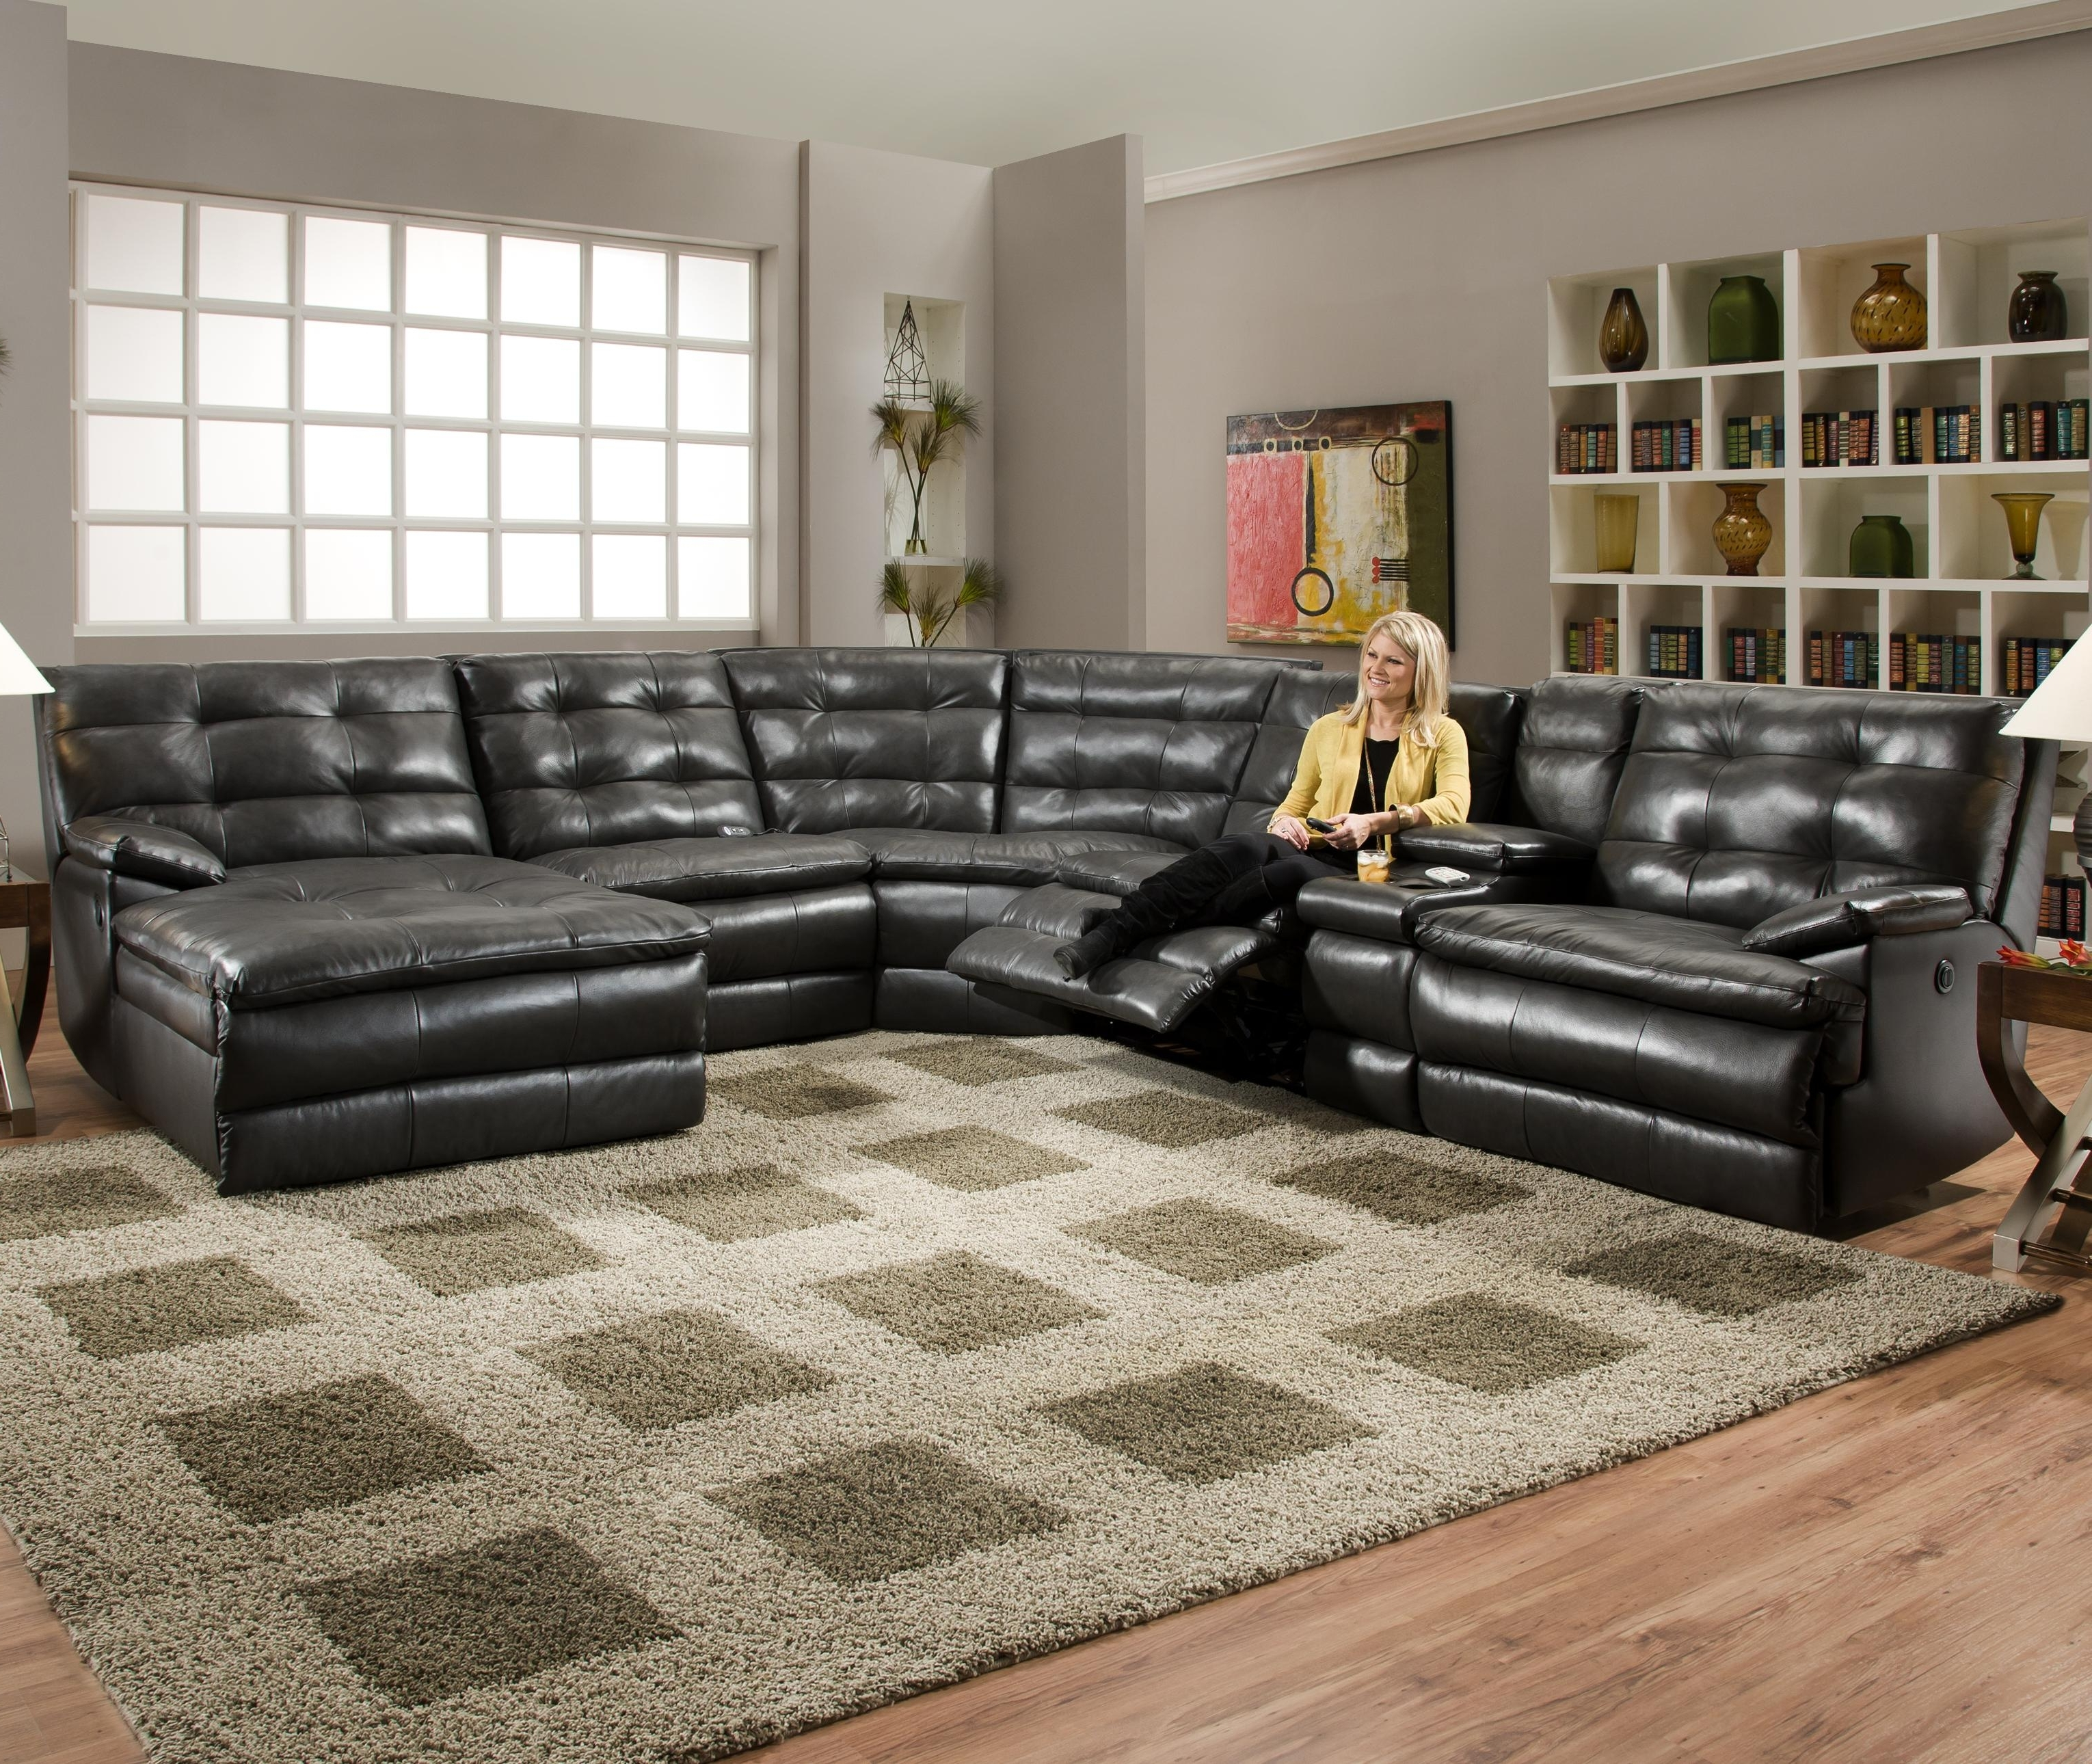 Luxurious Tufted Leather Sectional Sofa In Classy Black Color With Intended For Well Known Dayton Ohio Sectional Sofas (View 13 of 20)